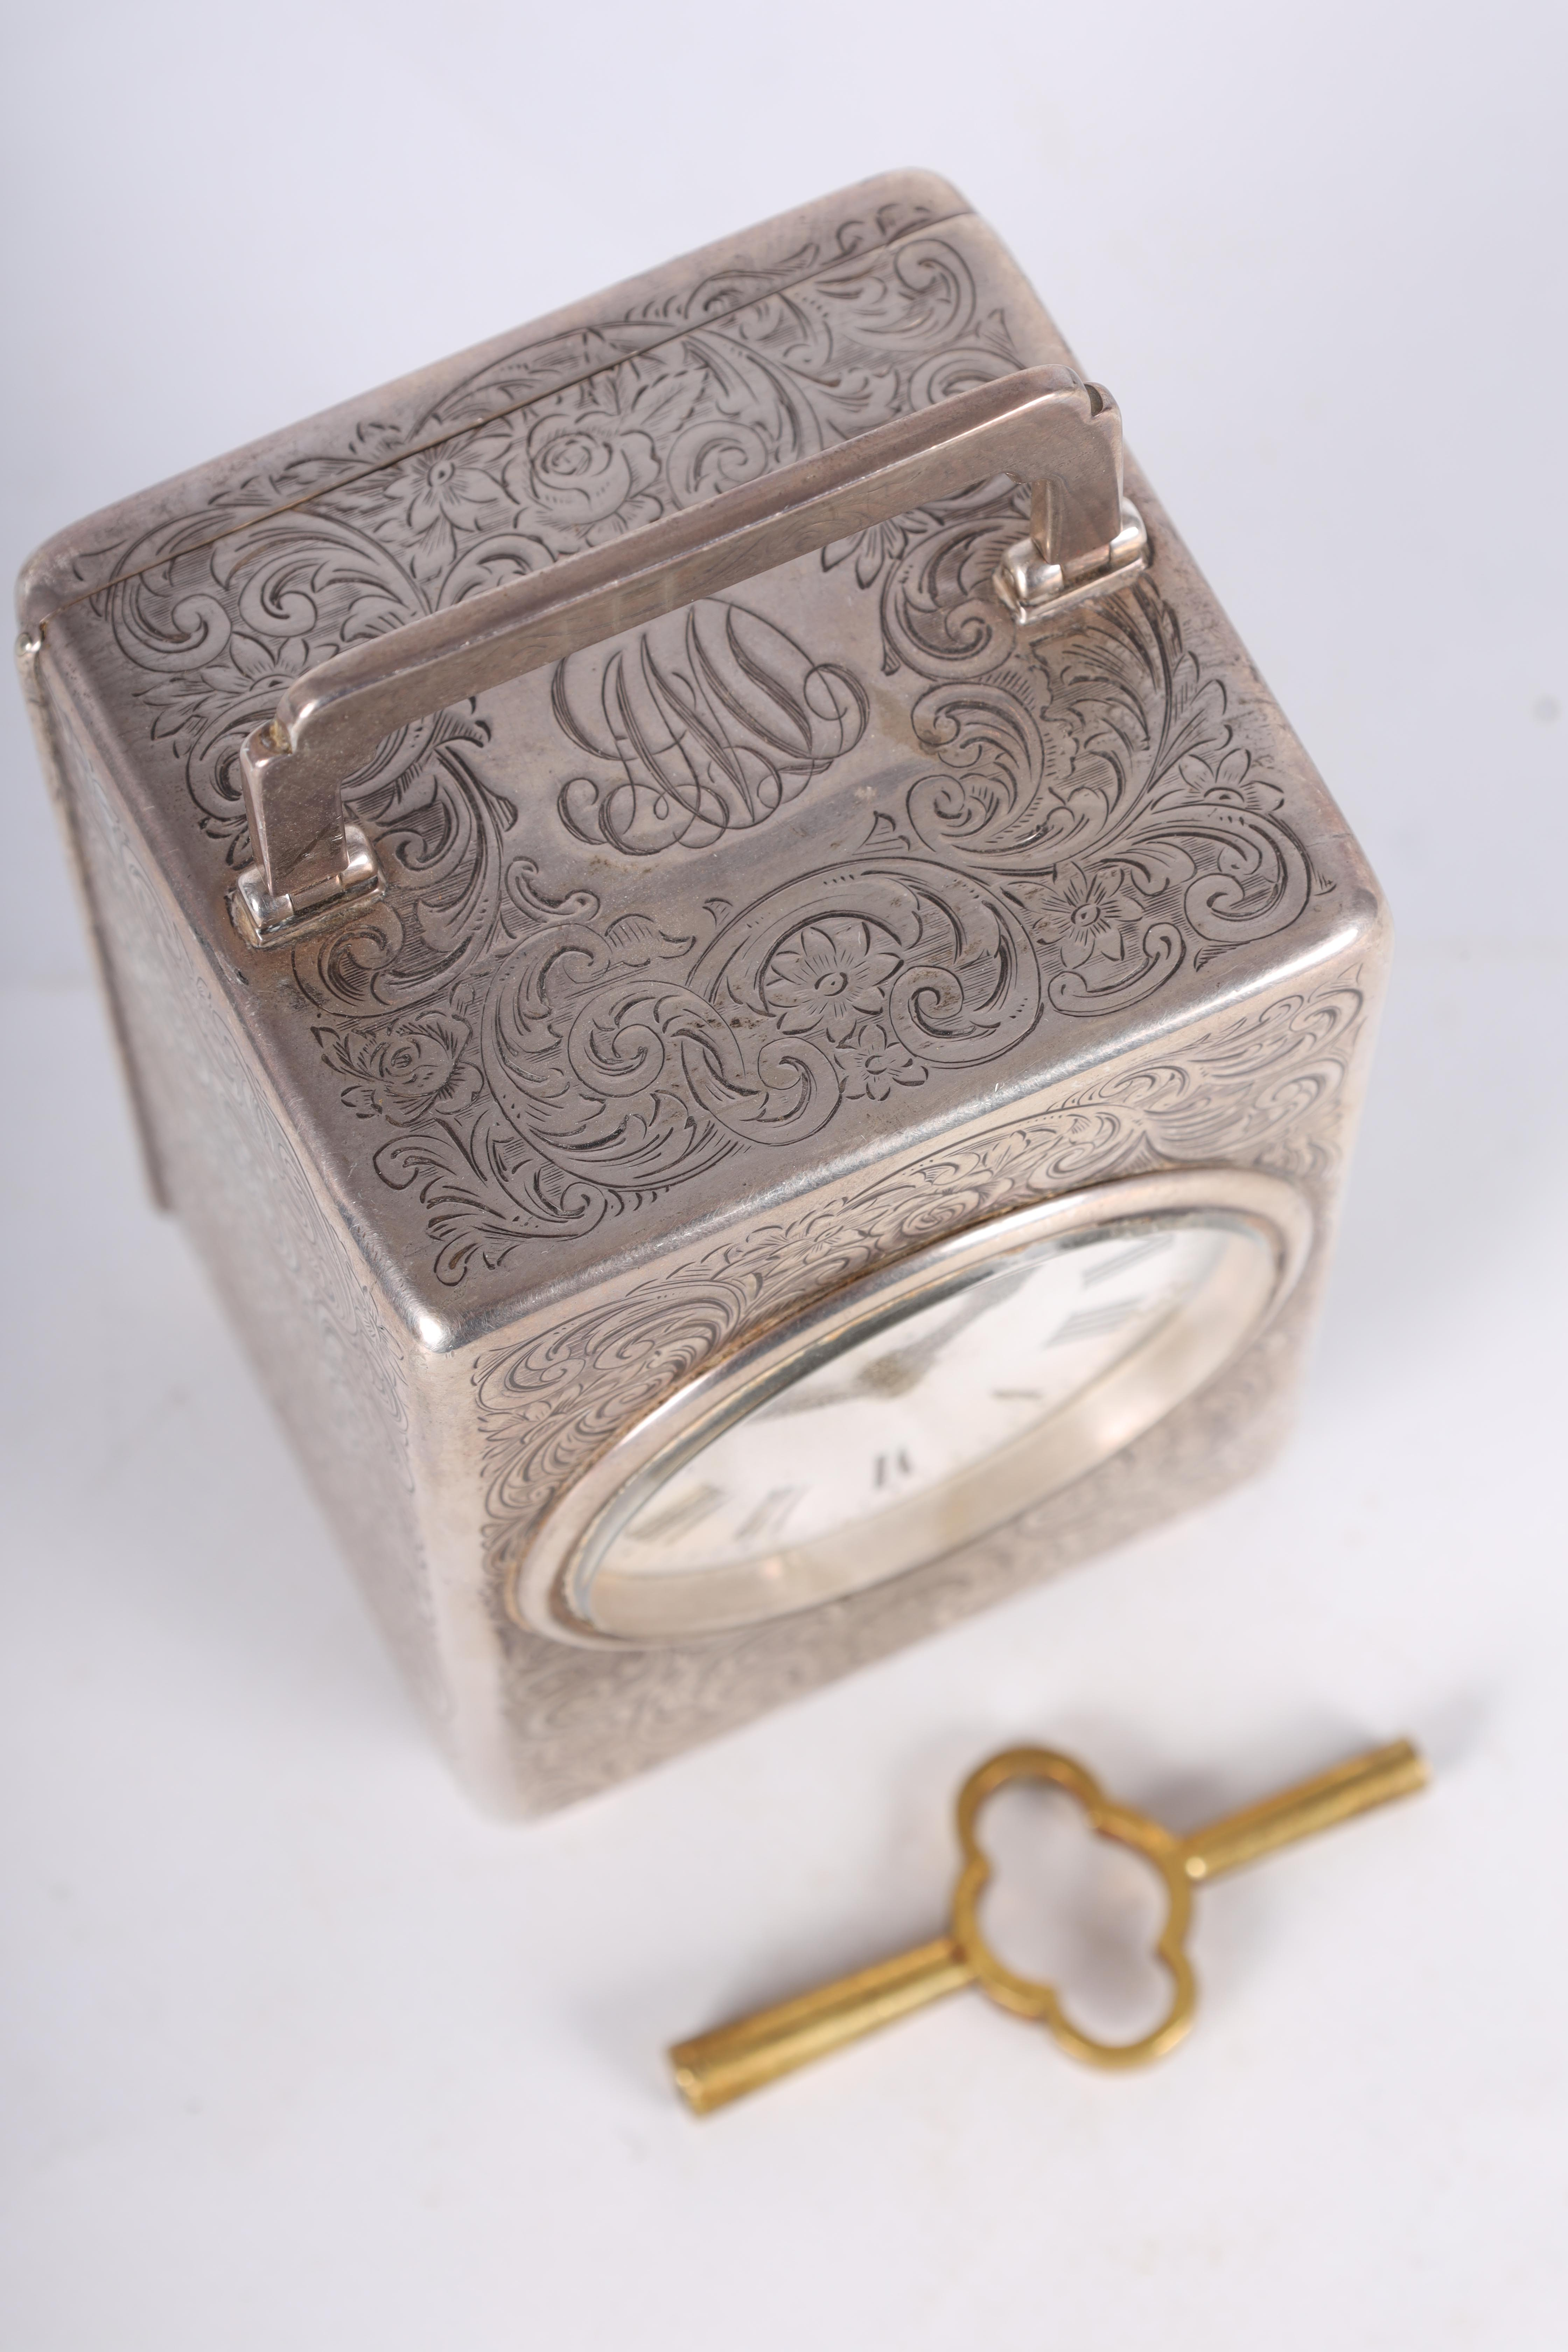 A LARGE EARLY 20TH CENTURY SILVER CASED CARRIAGE CLOCK the case covered with scrolling foliated - Image 4 of 10